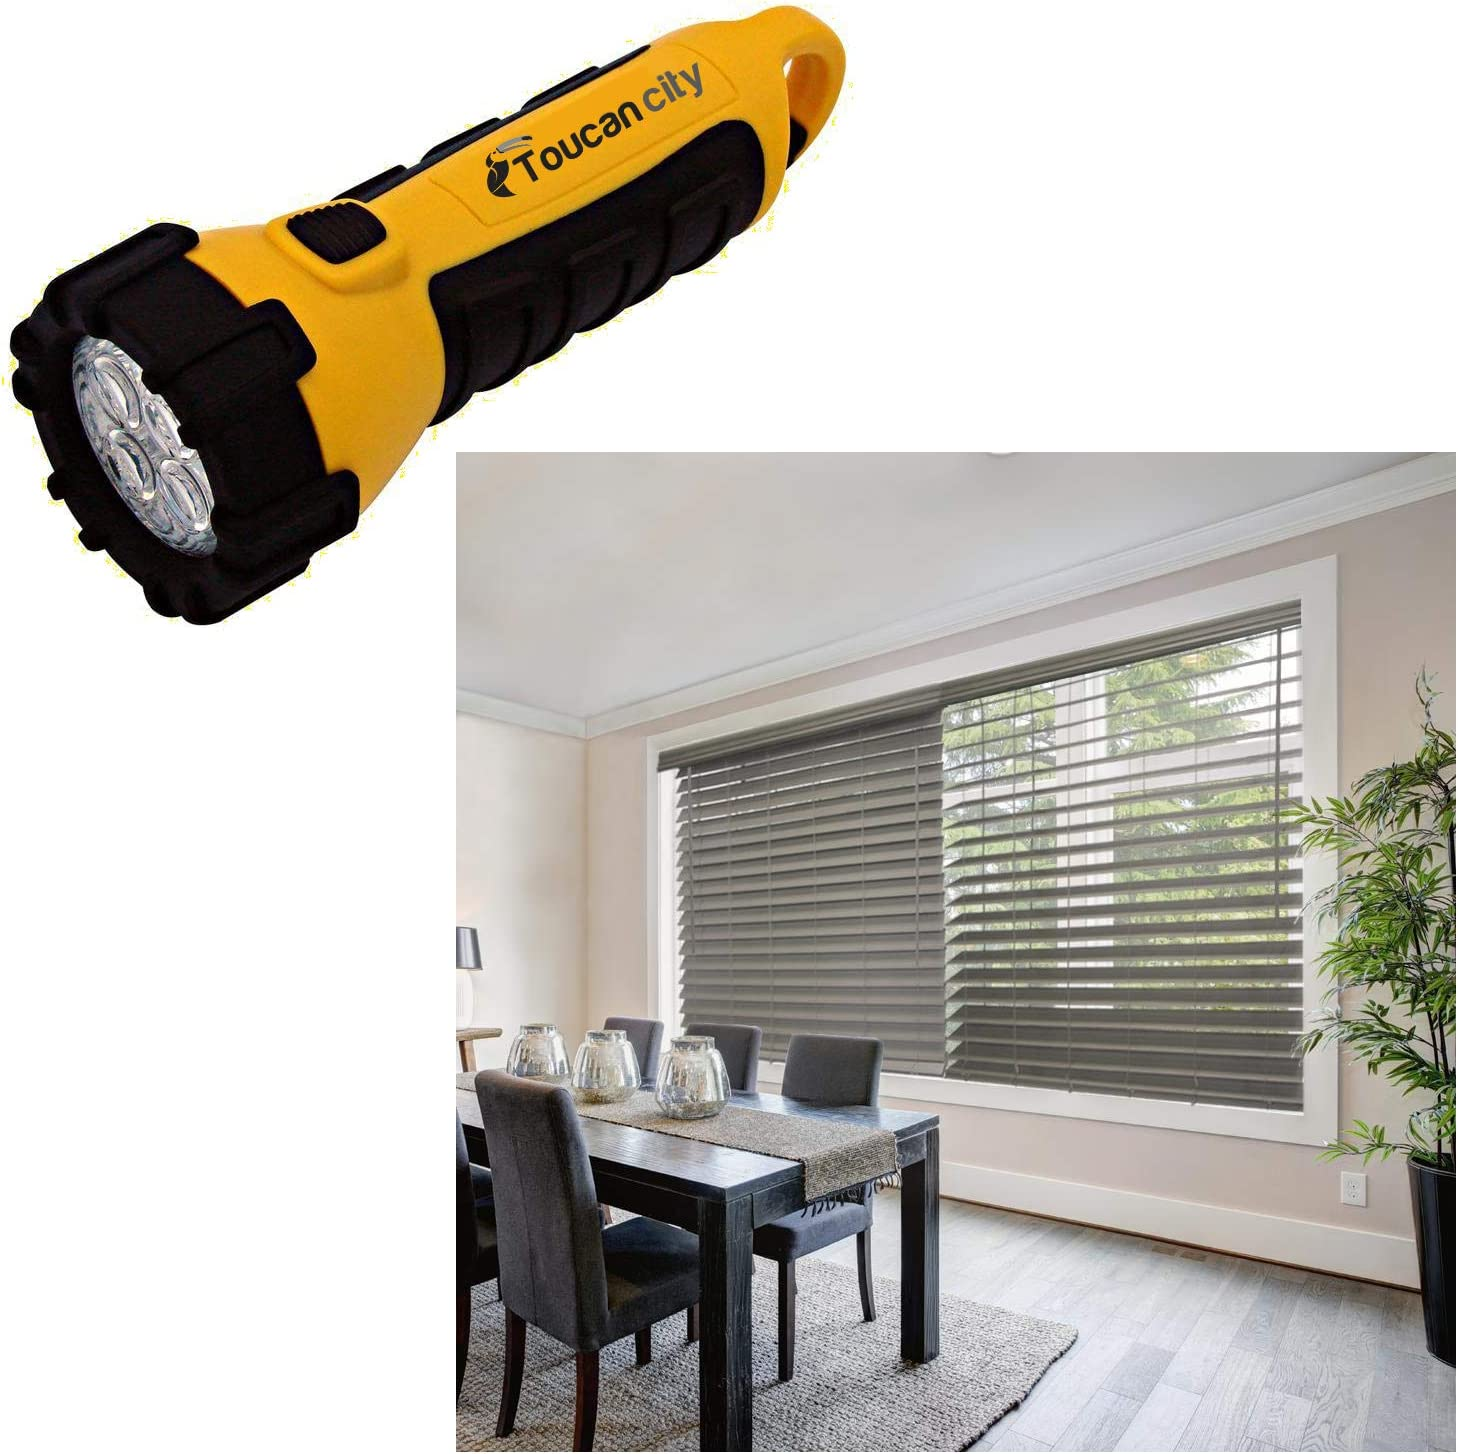 Toucan City LED Flashlight and Home Decorators Collection Gray (Driftwood) Cordless 2-1/2 in. Premium Faux Wood Blinds - 55 in. W x 64 in. L (Actual Size 54.5 in. W x 64 in. L) 10793478381753